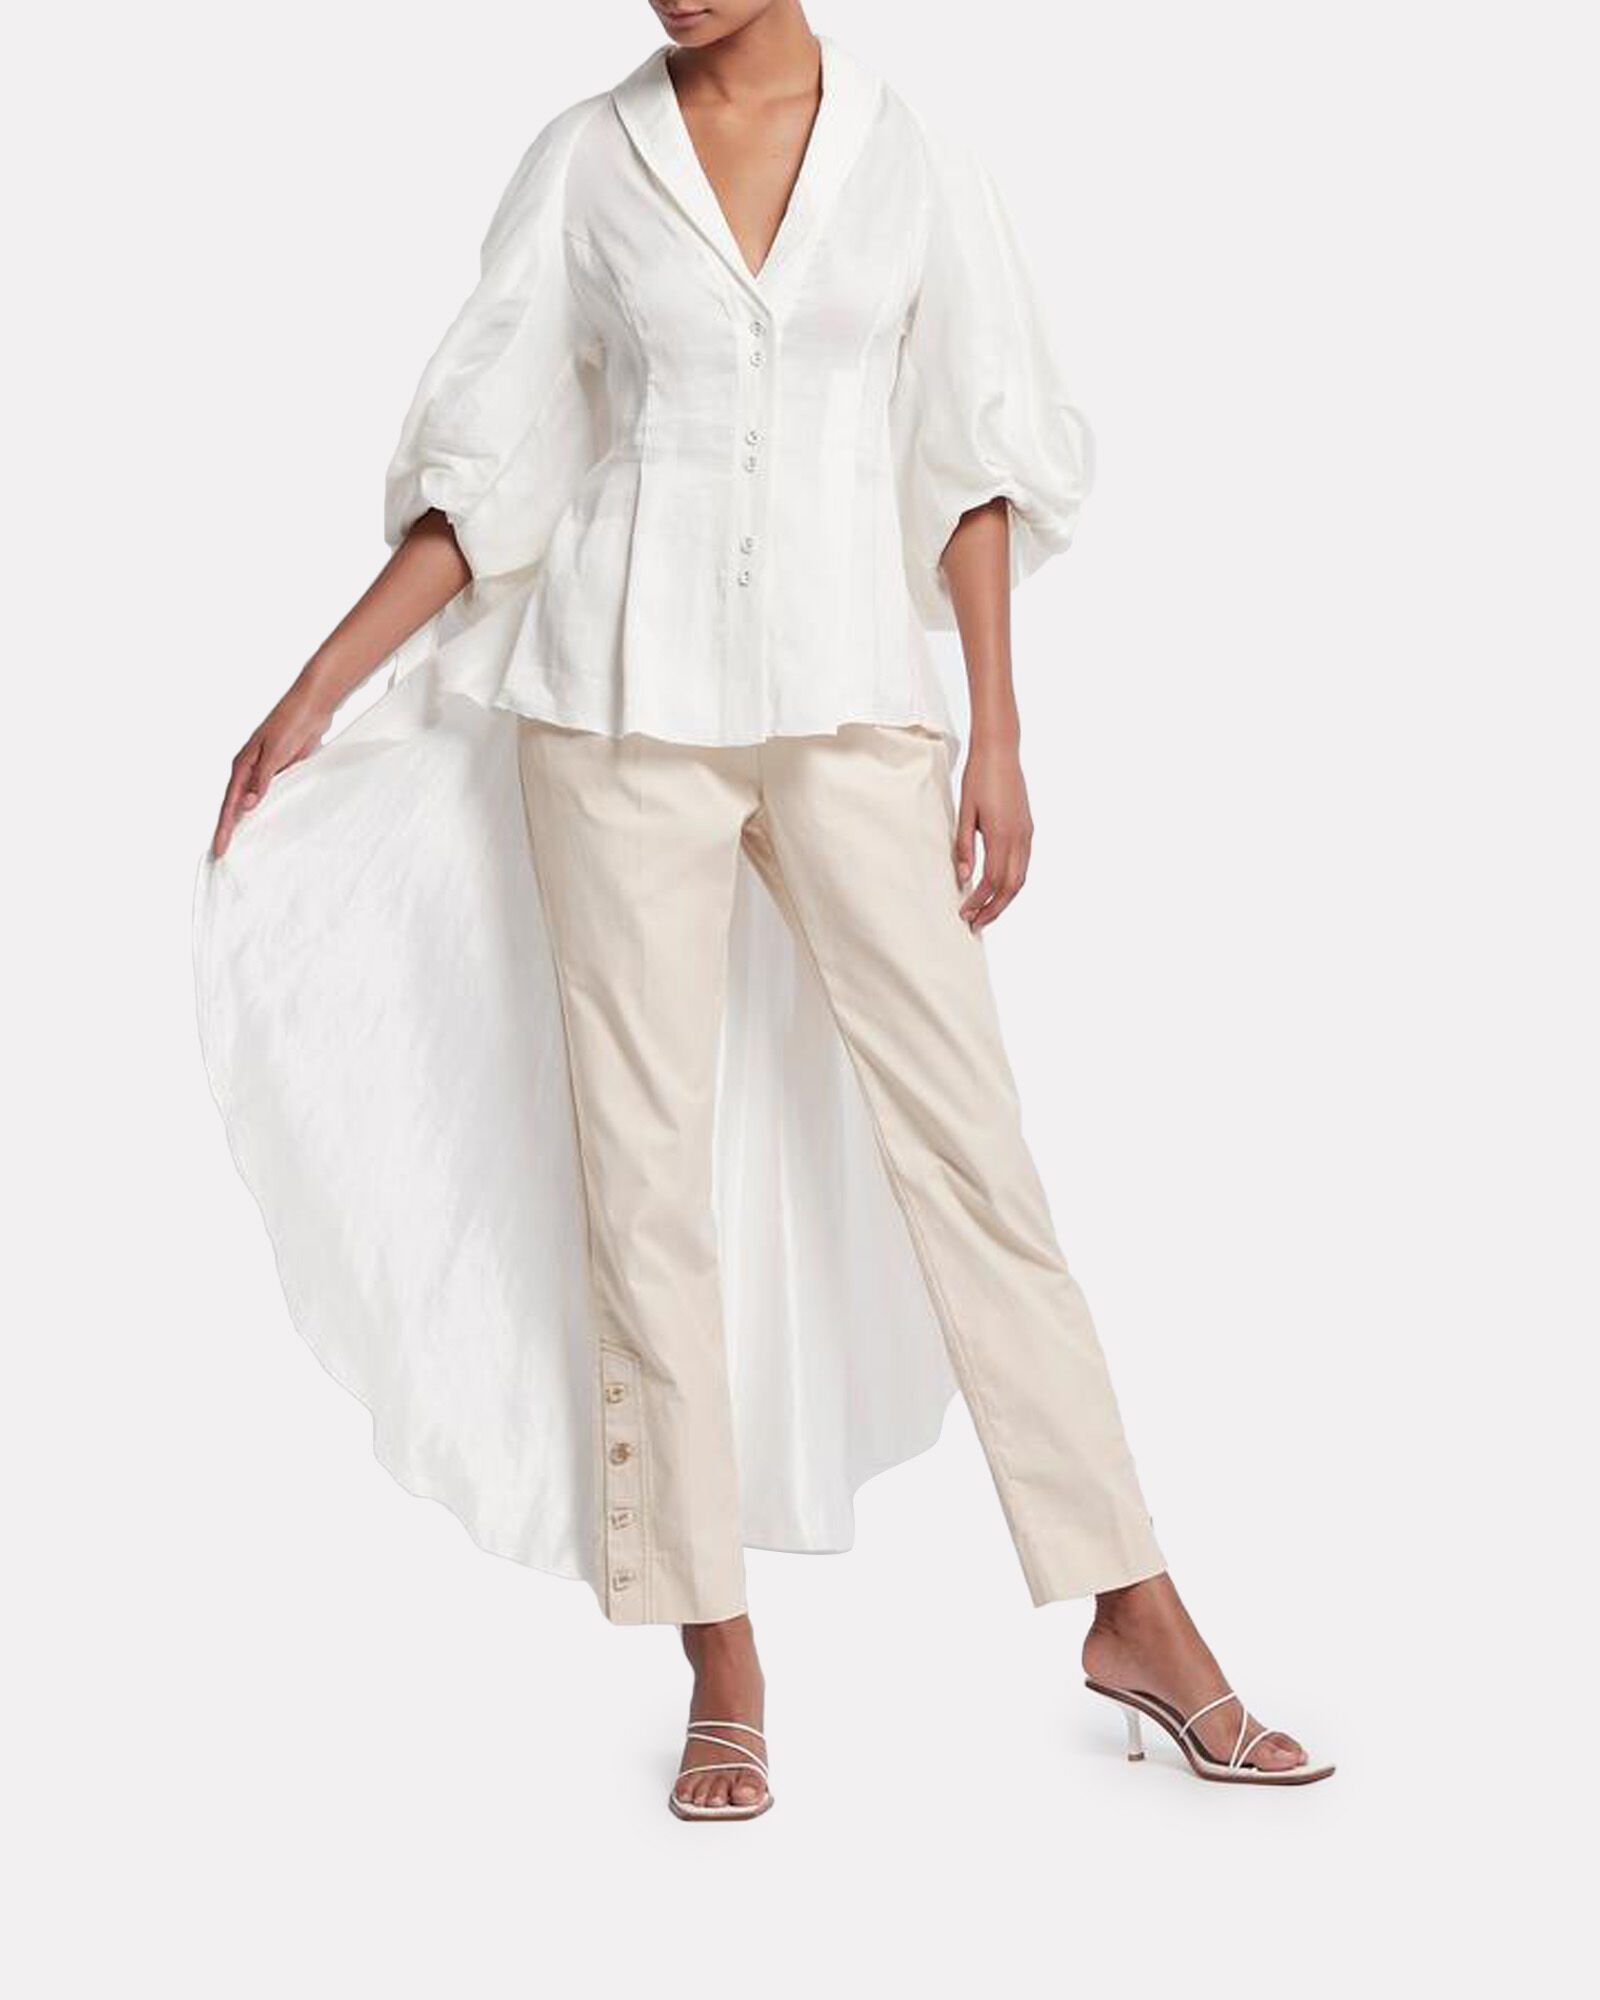 Allégro High-Low Silk-Linen Blouse, WHITE, hi-res